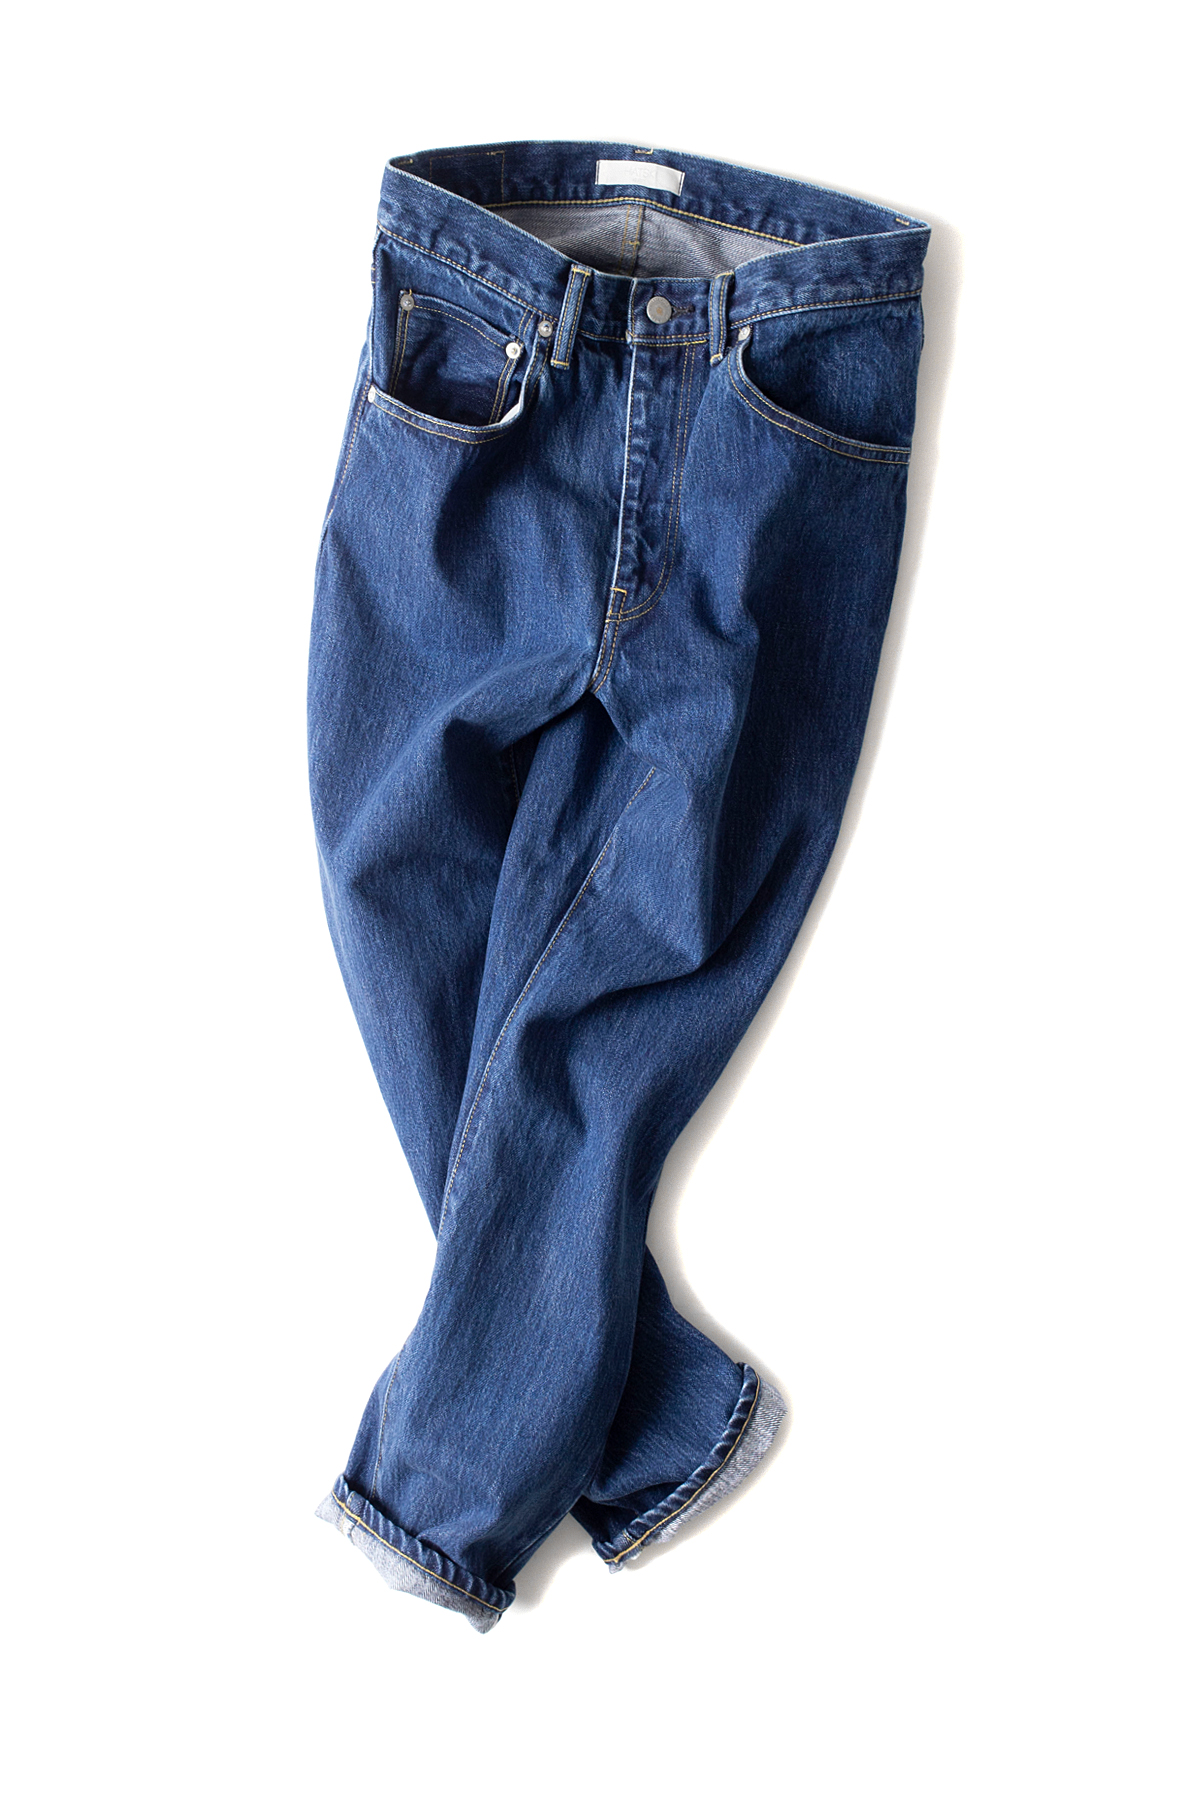 HATSKI : Loose Tapered Denim (Blue)